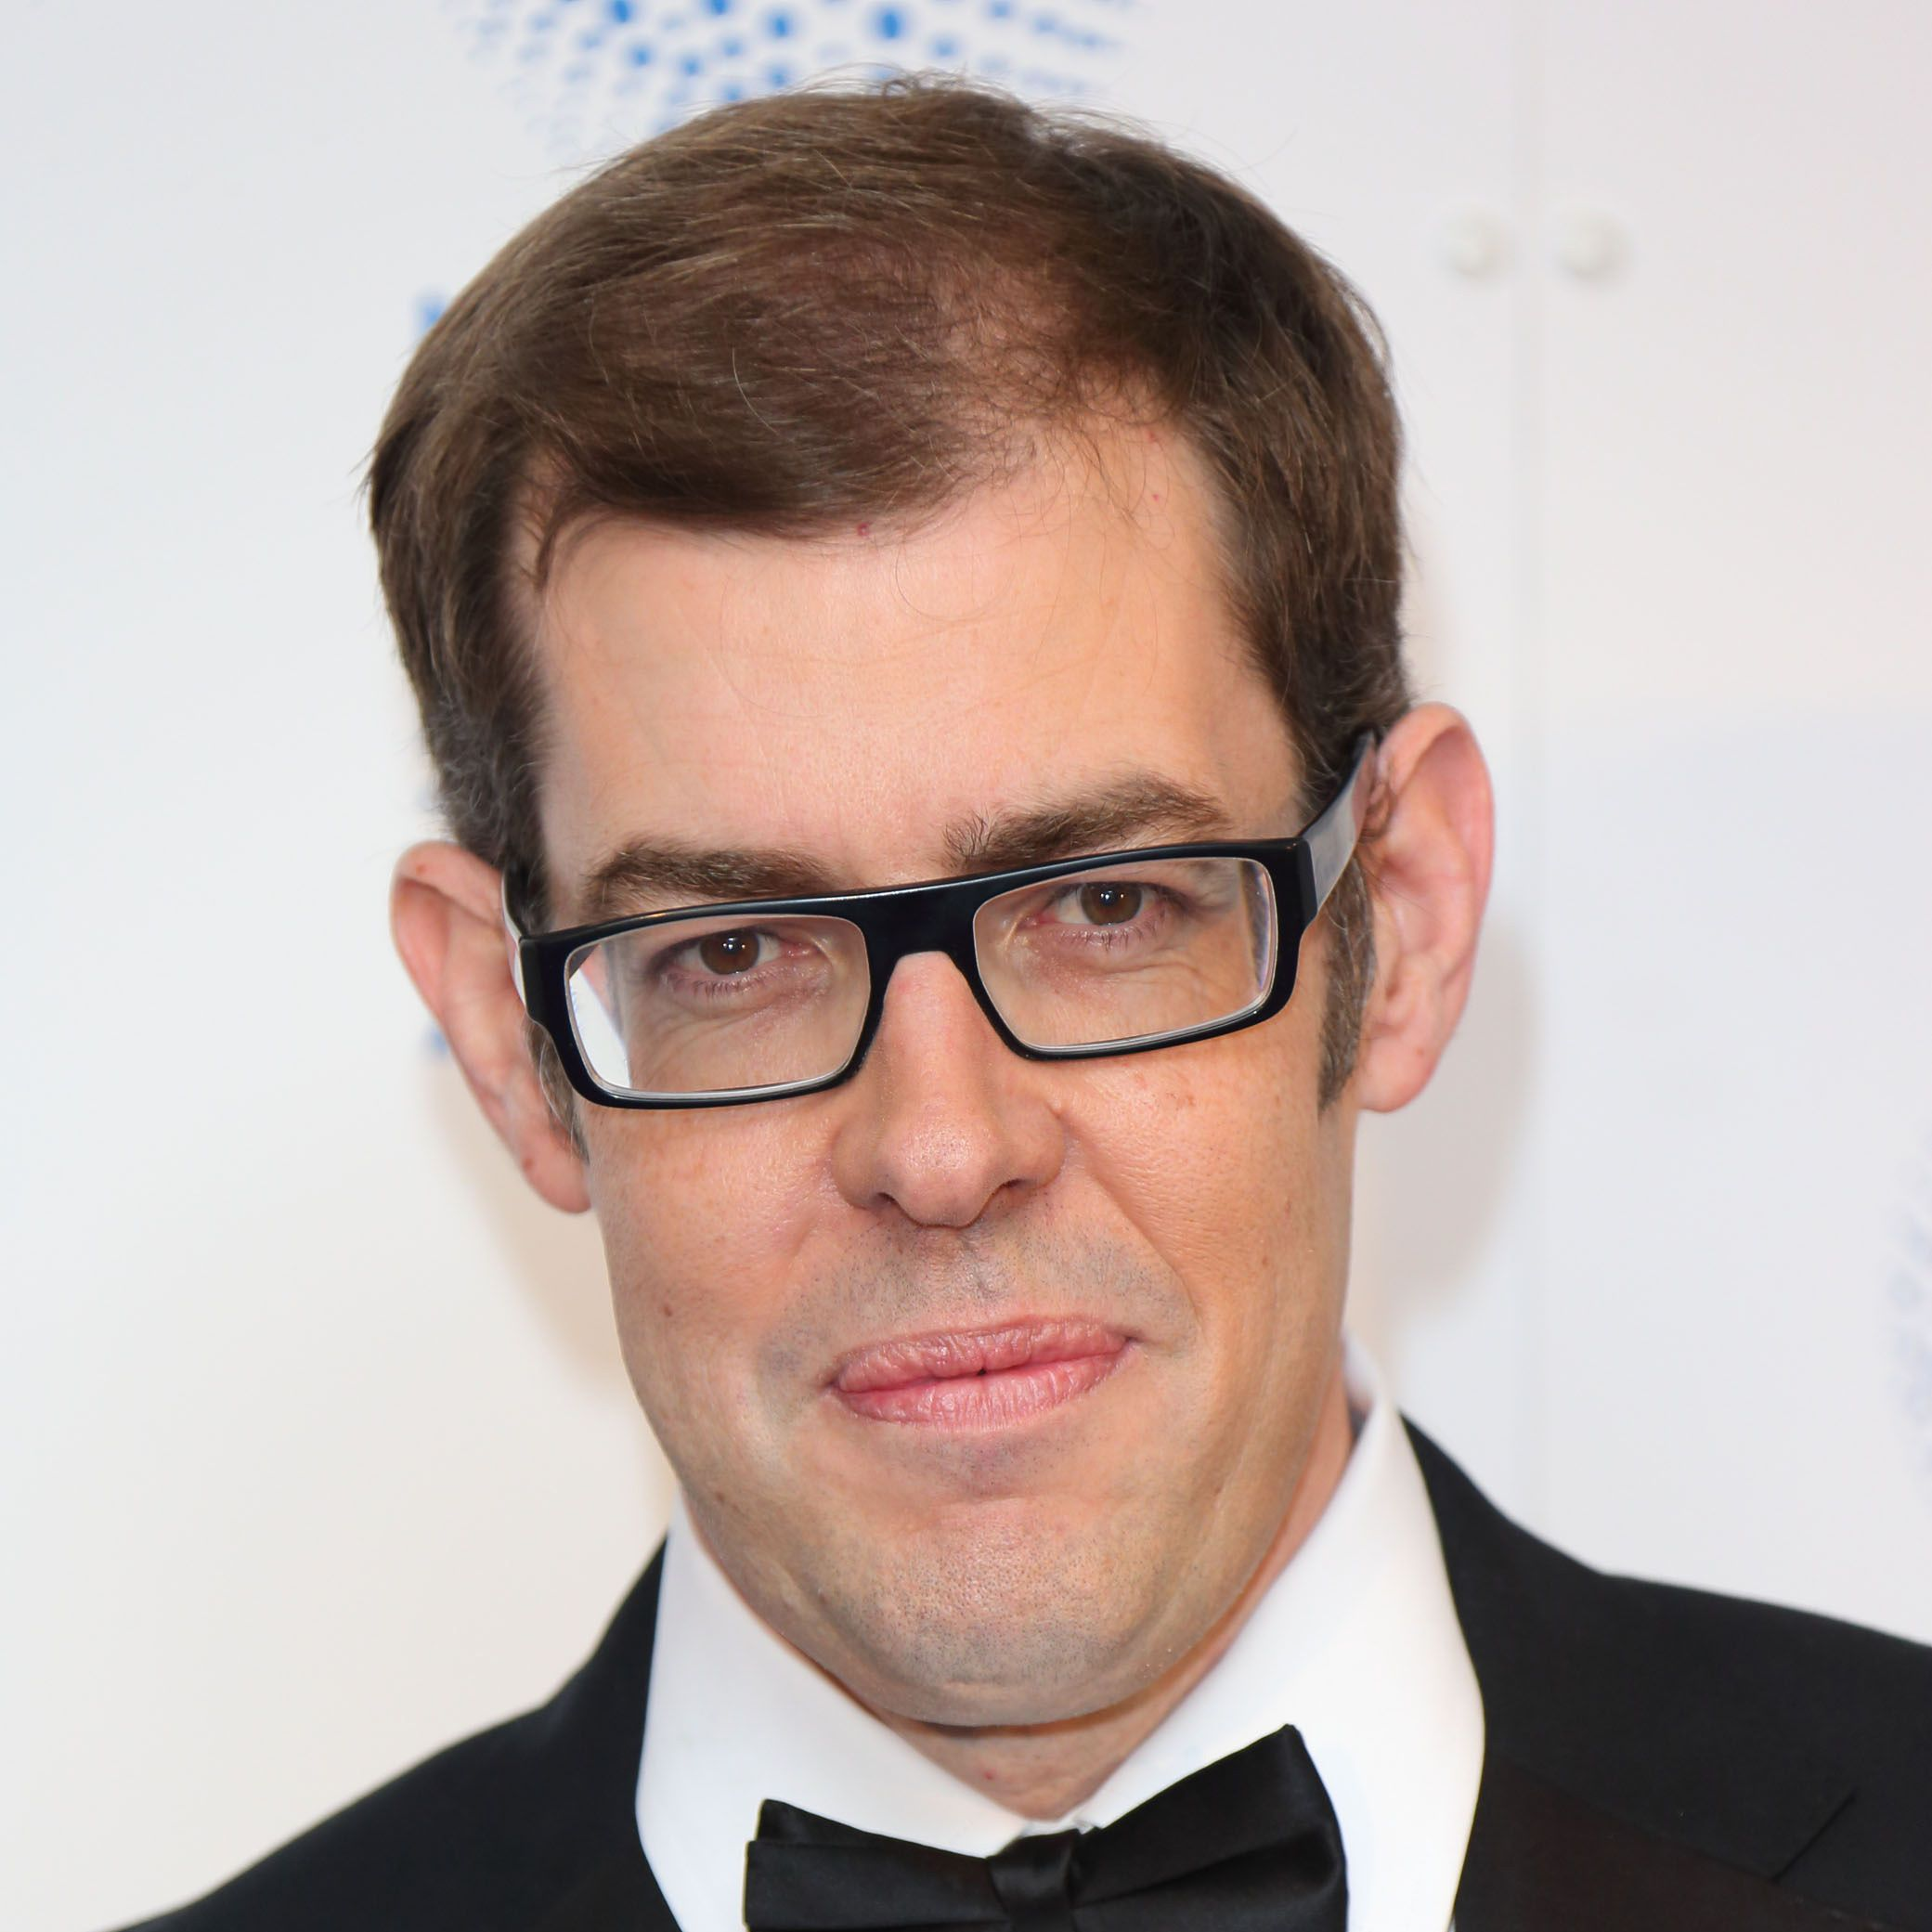 LONDON, ENGLAND - JANUARY 23: Richard Osman poses in the winners room at the National Television Awards at 02 Arena on January 23, 2013 in London, England.  (Photo by Mike Marsland/WireImage)